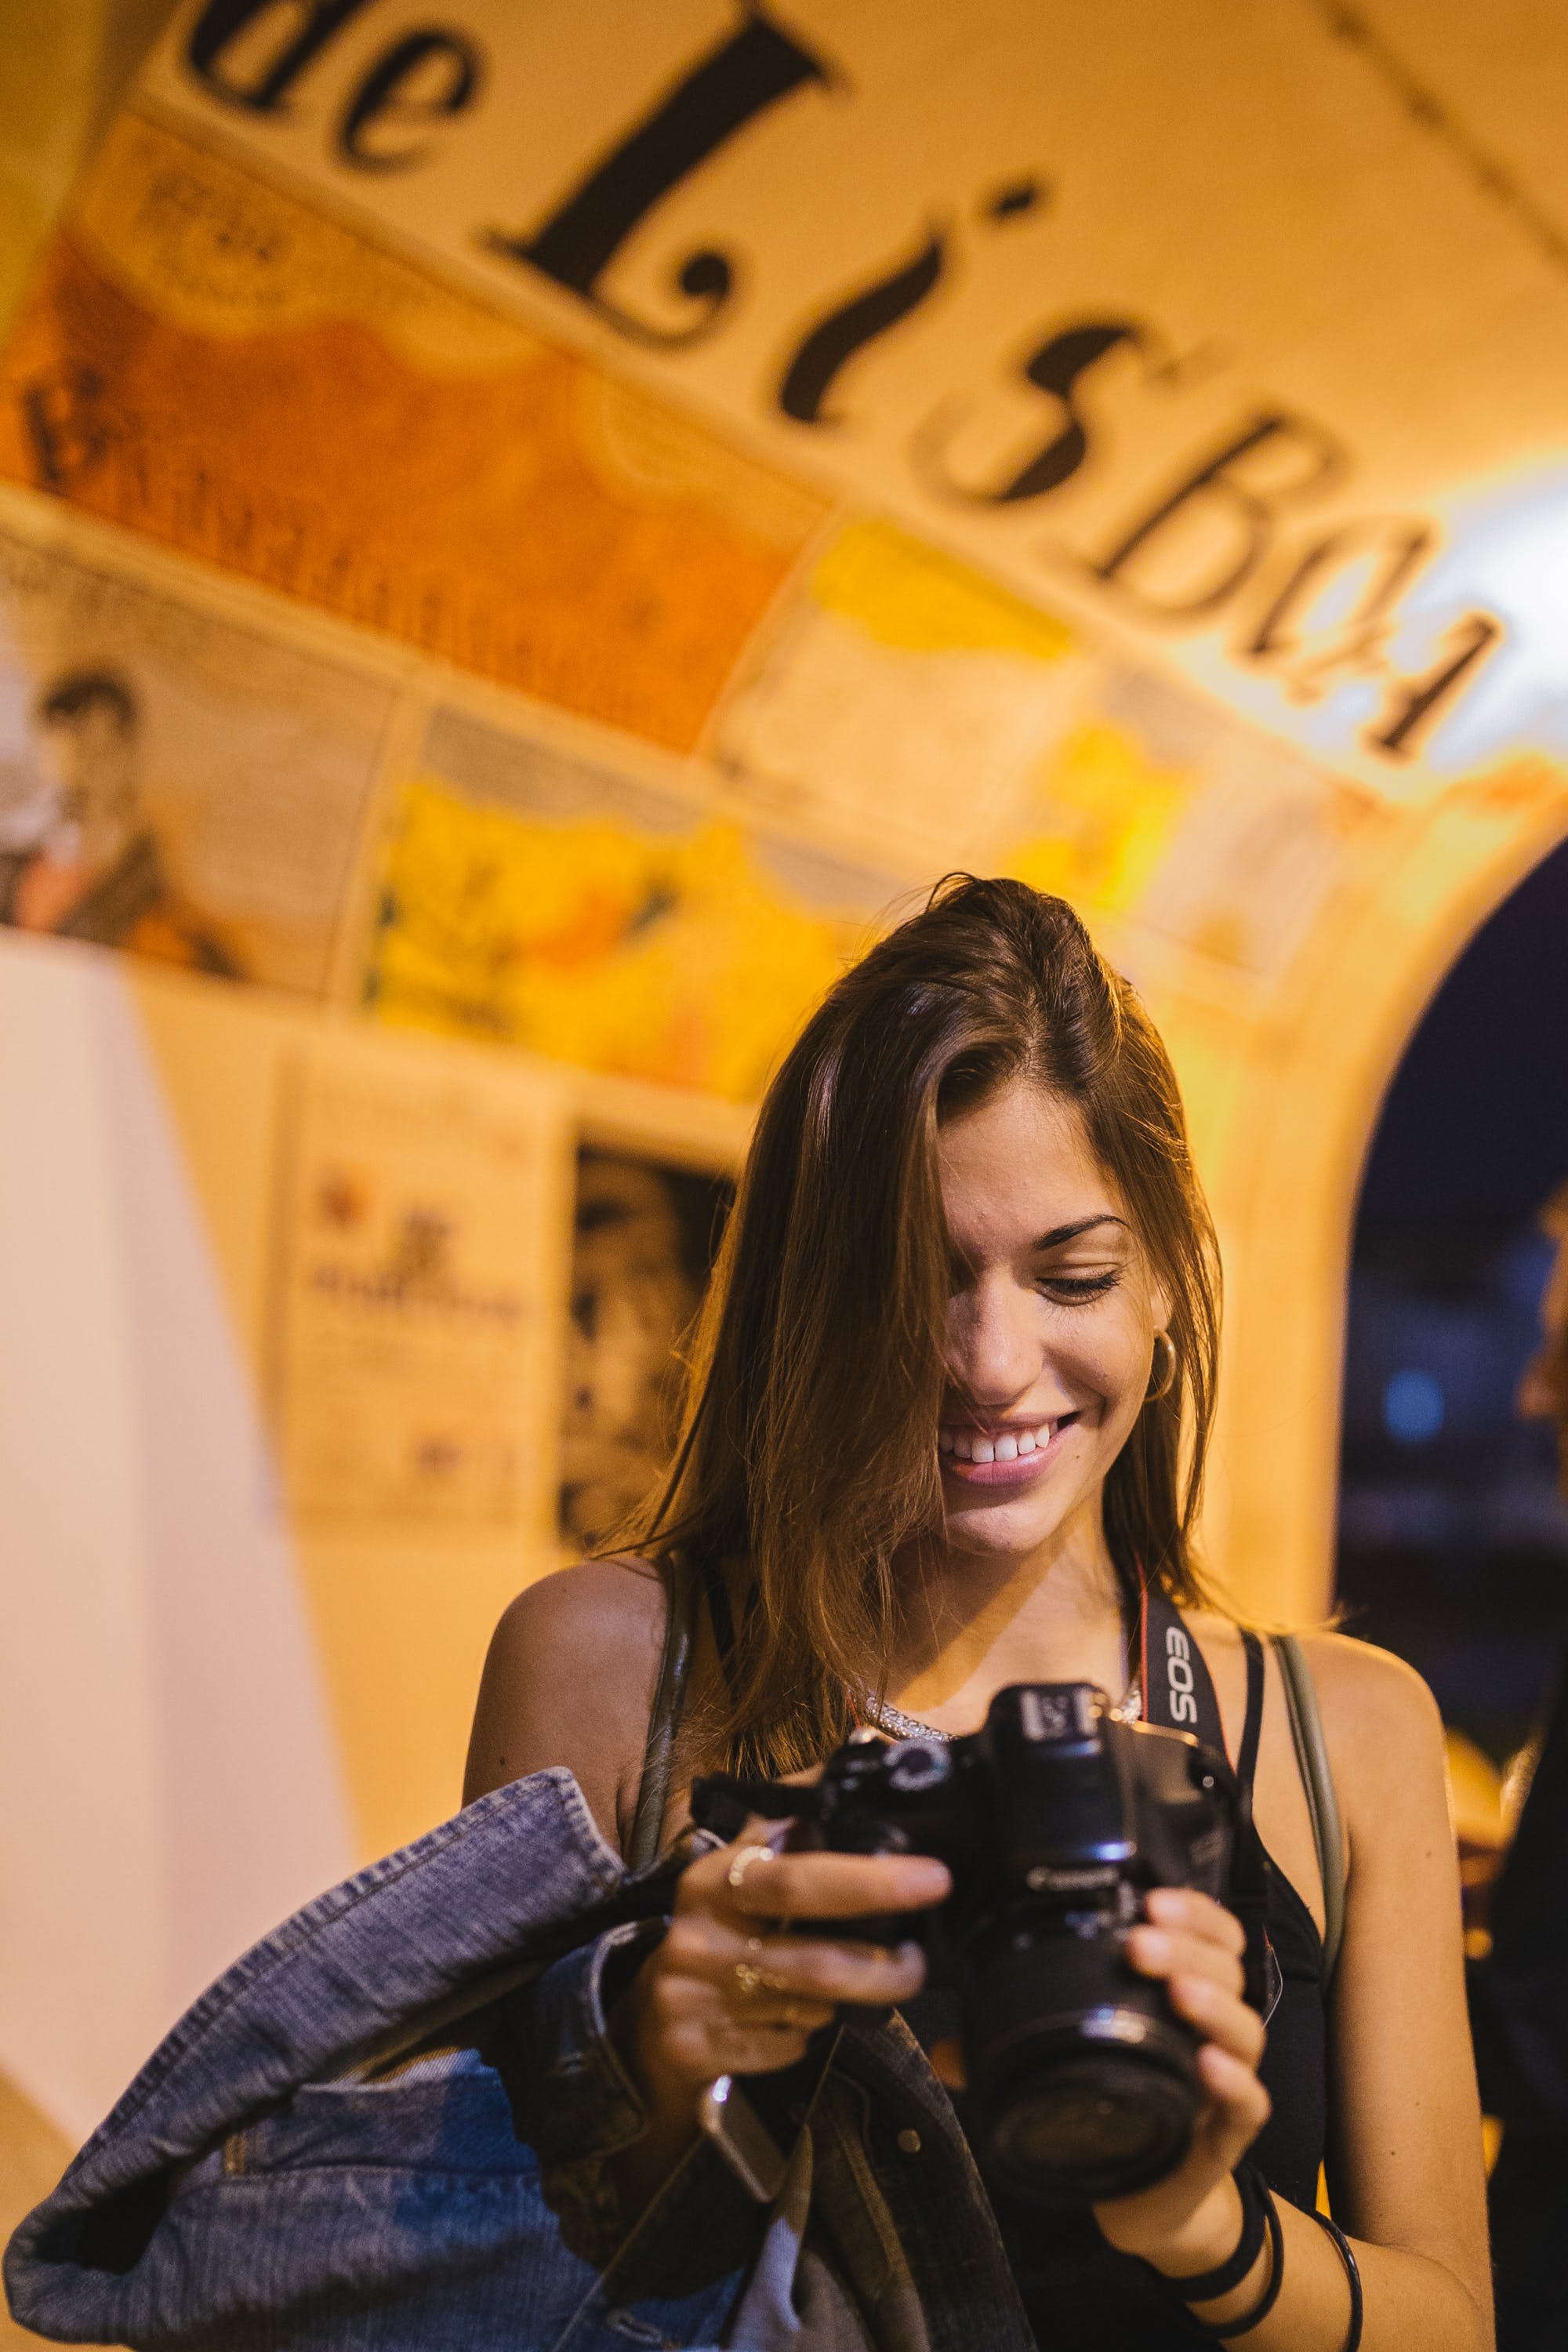 Selective Focus Photography of Woman Smiling Holding Dslr Camera